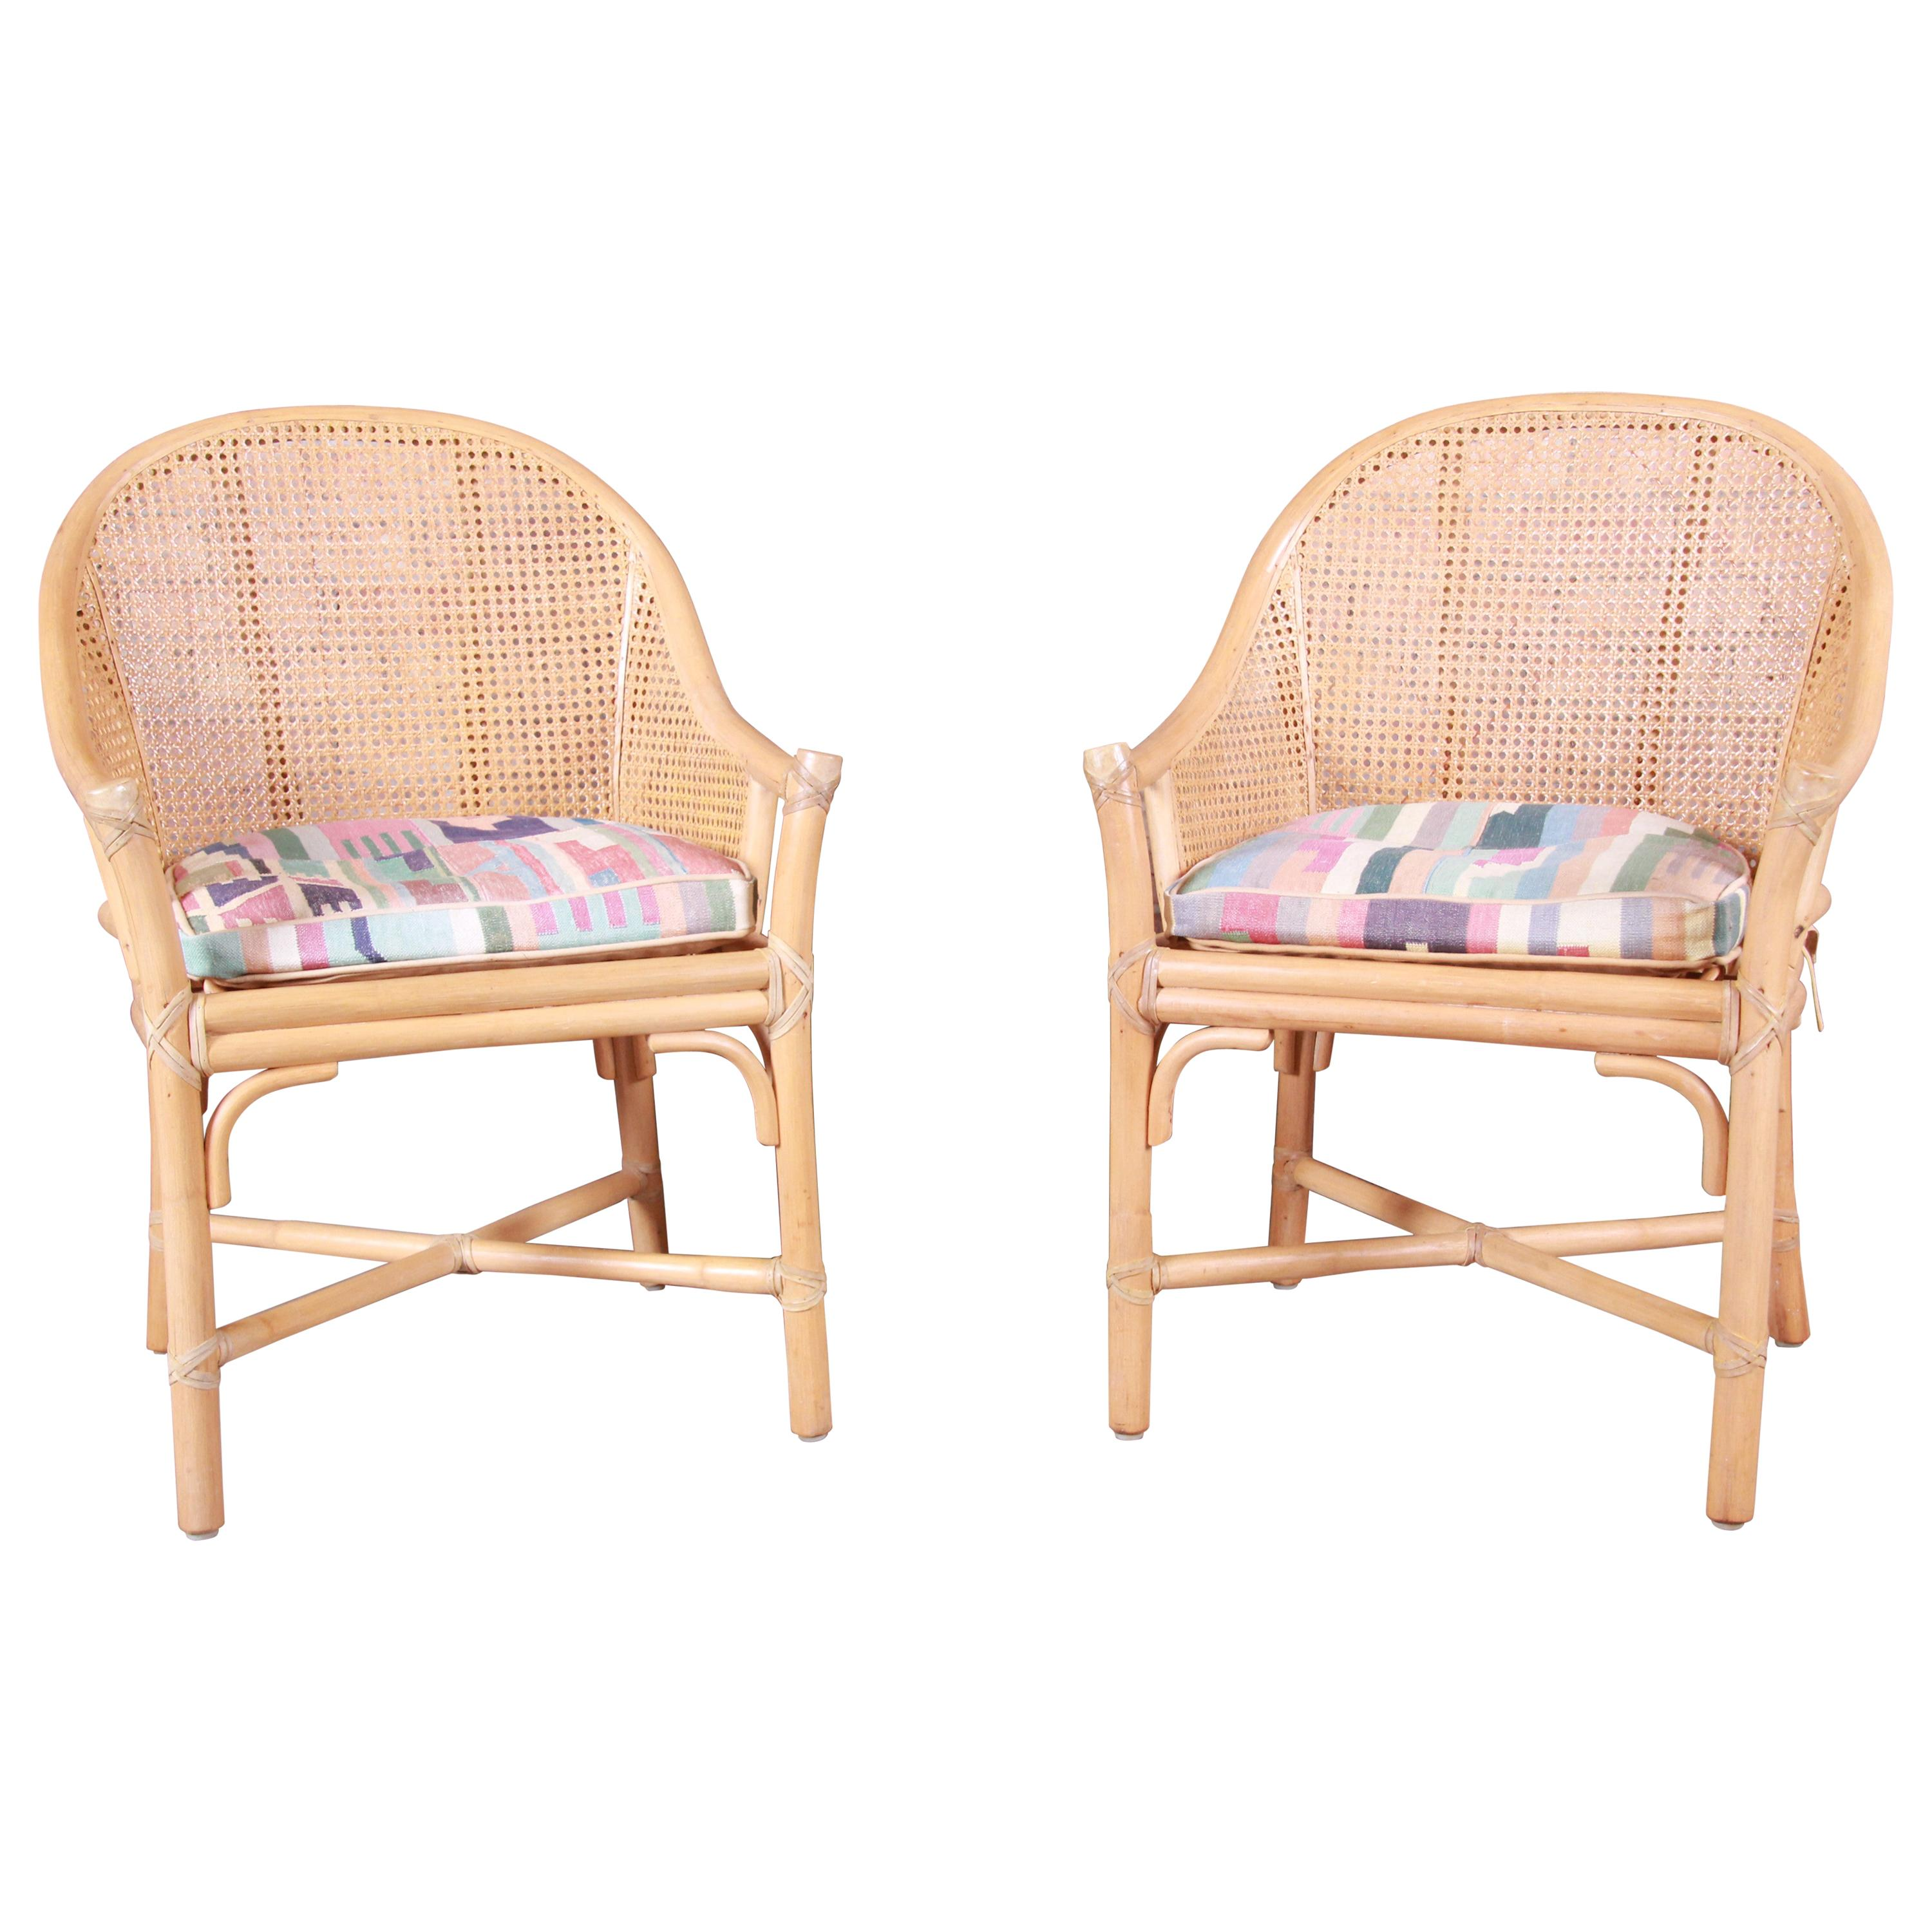 McGuire Hollywood Regency Organic Modern Bamboo and Cane Club Chairs, Pair